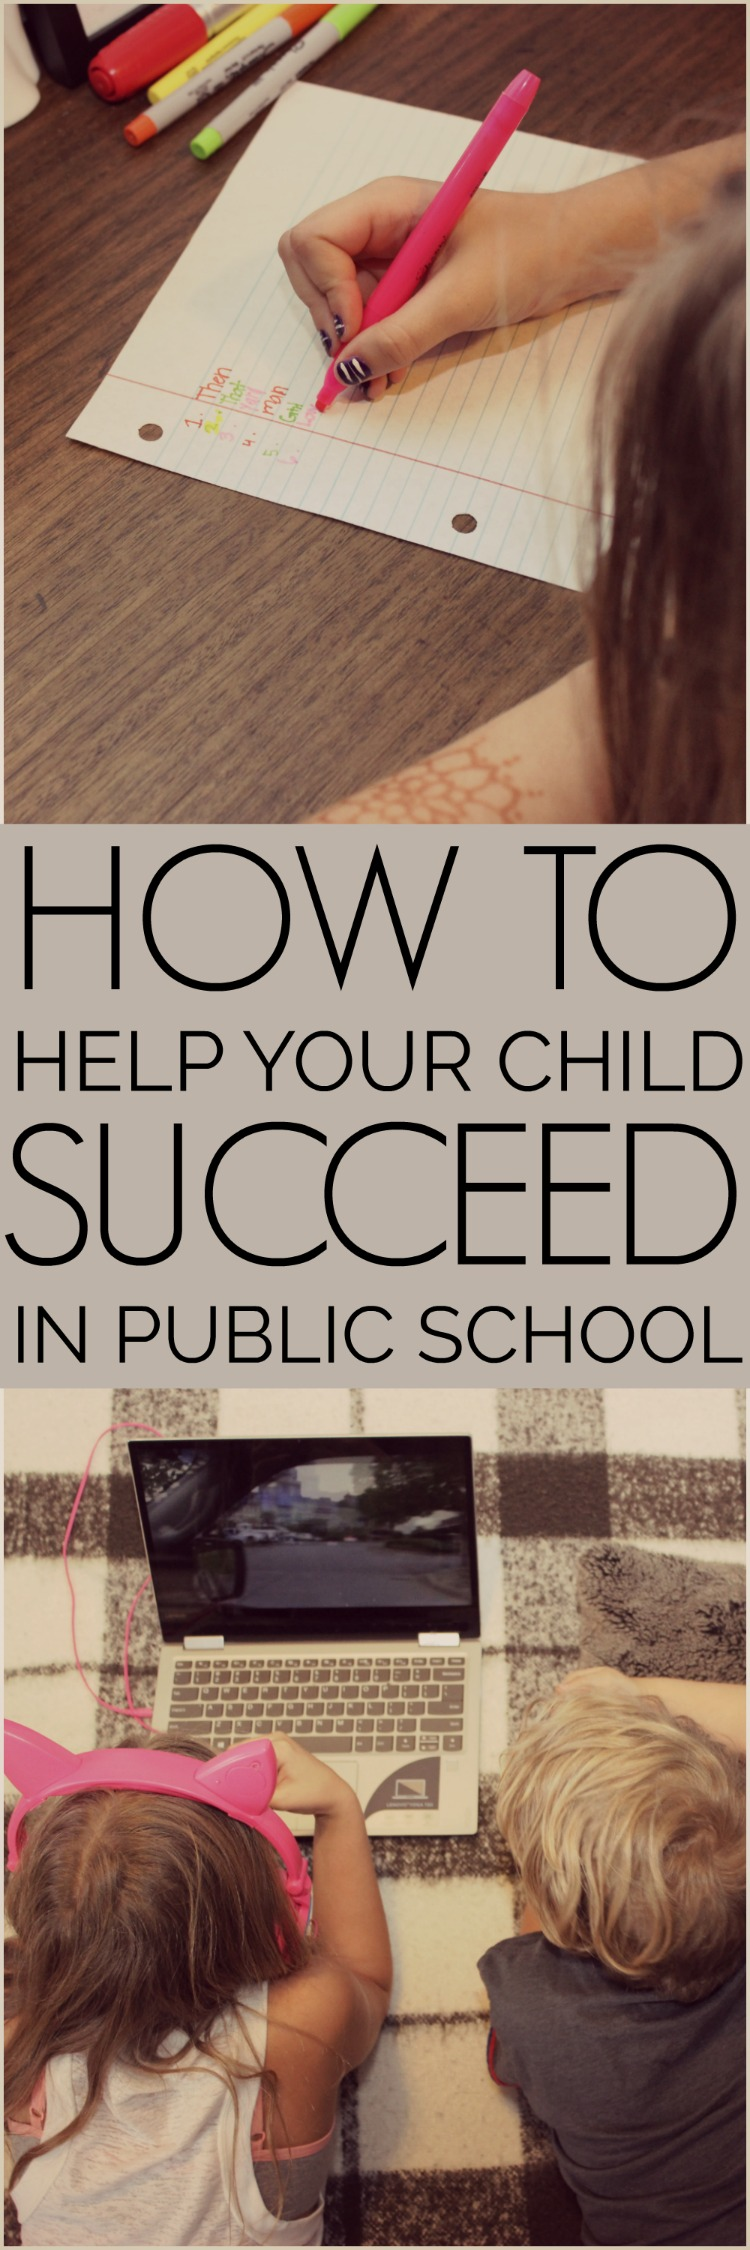 How to help your child succeed in public school